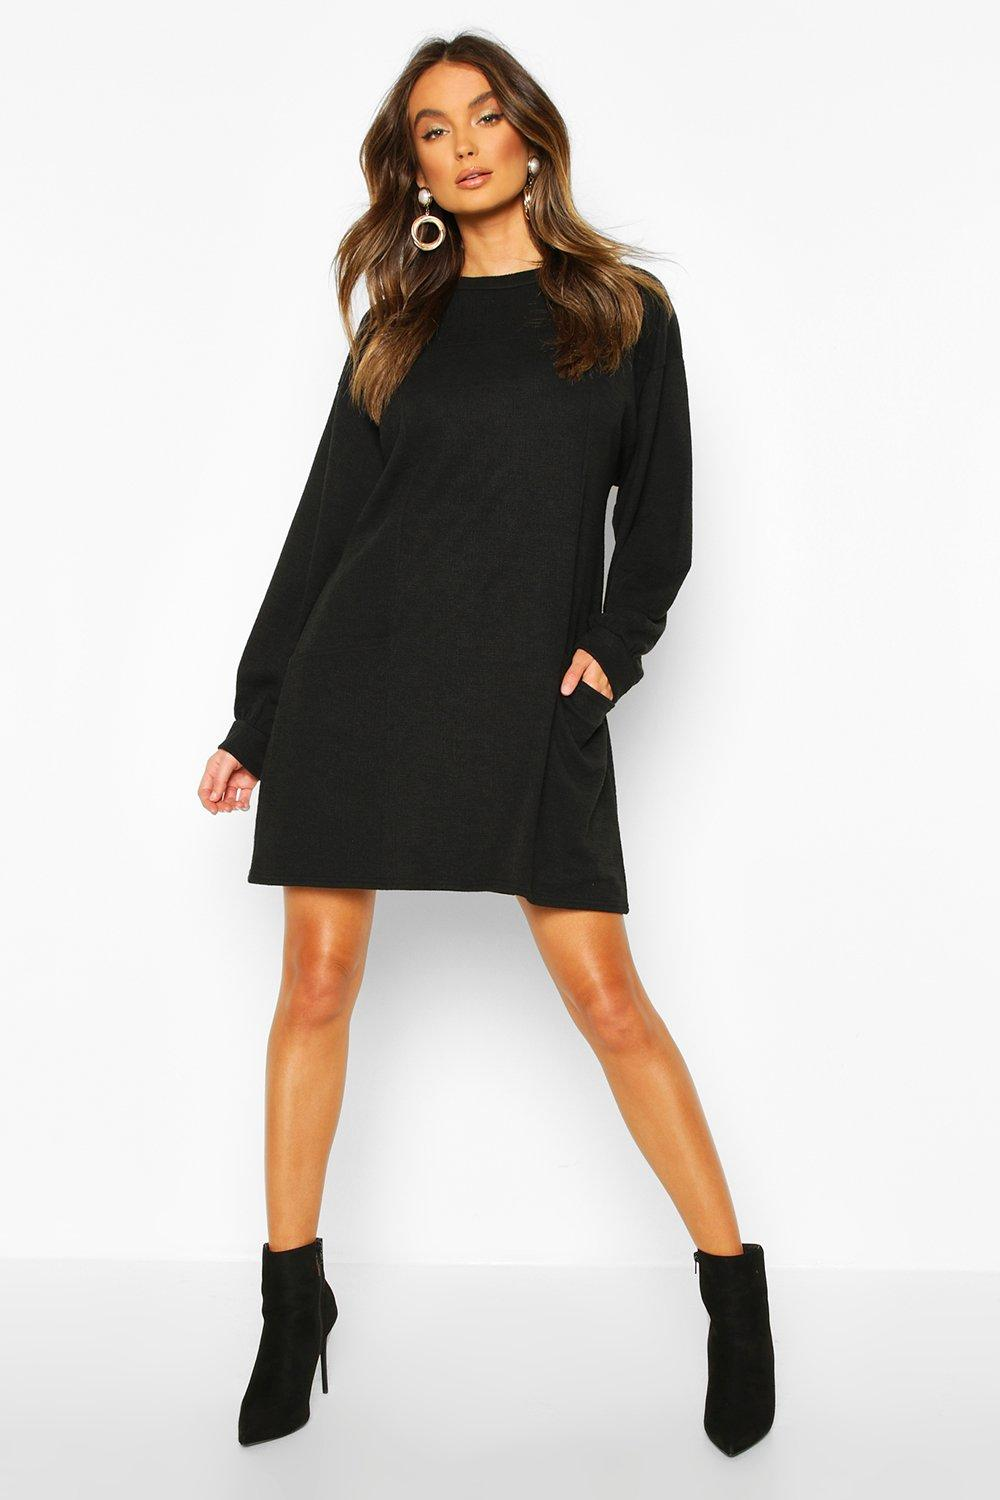 boohoo Womens Crew Neck Panel And Pocket Front Dress - Black - 14, Black